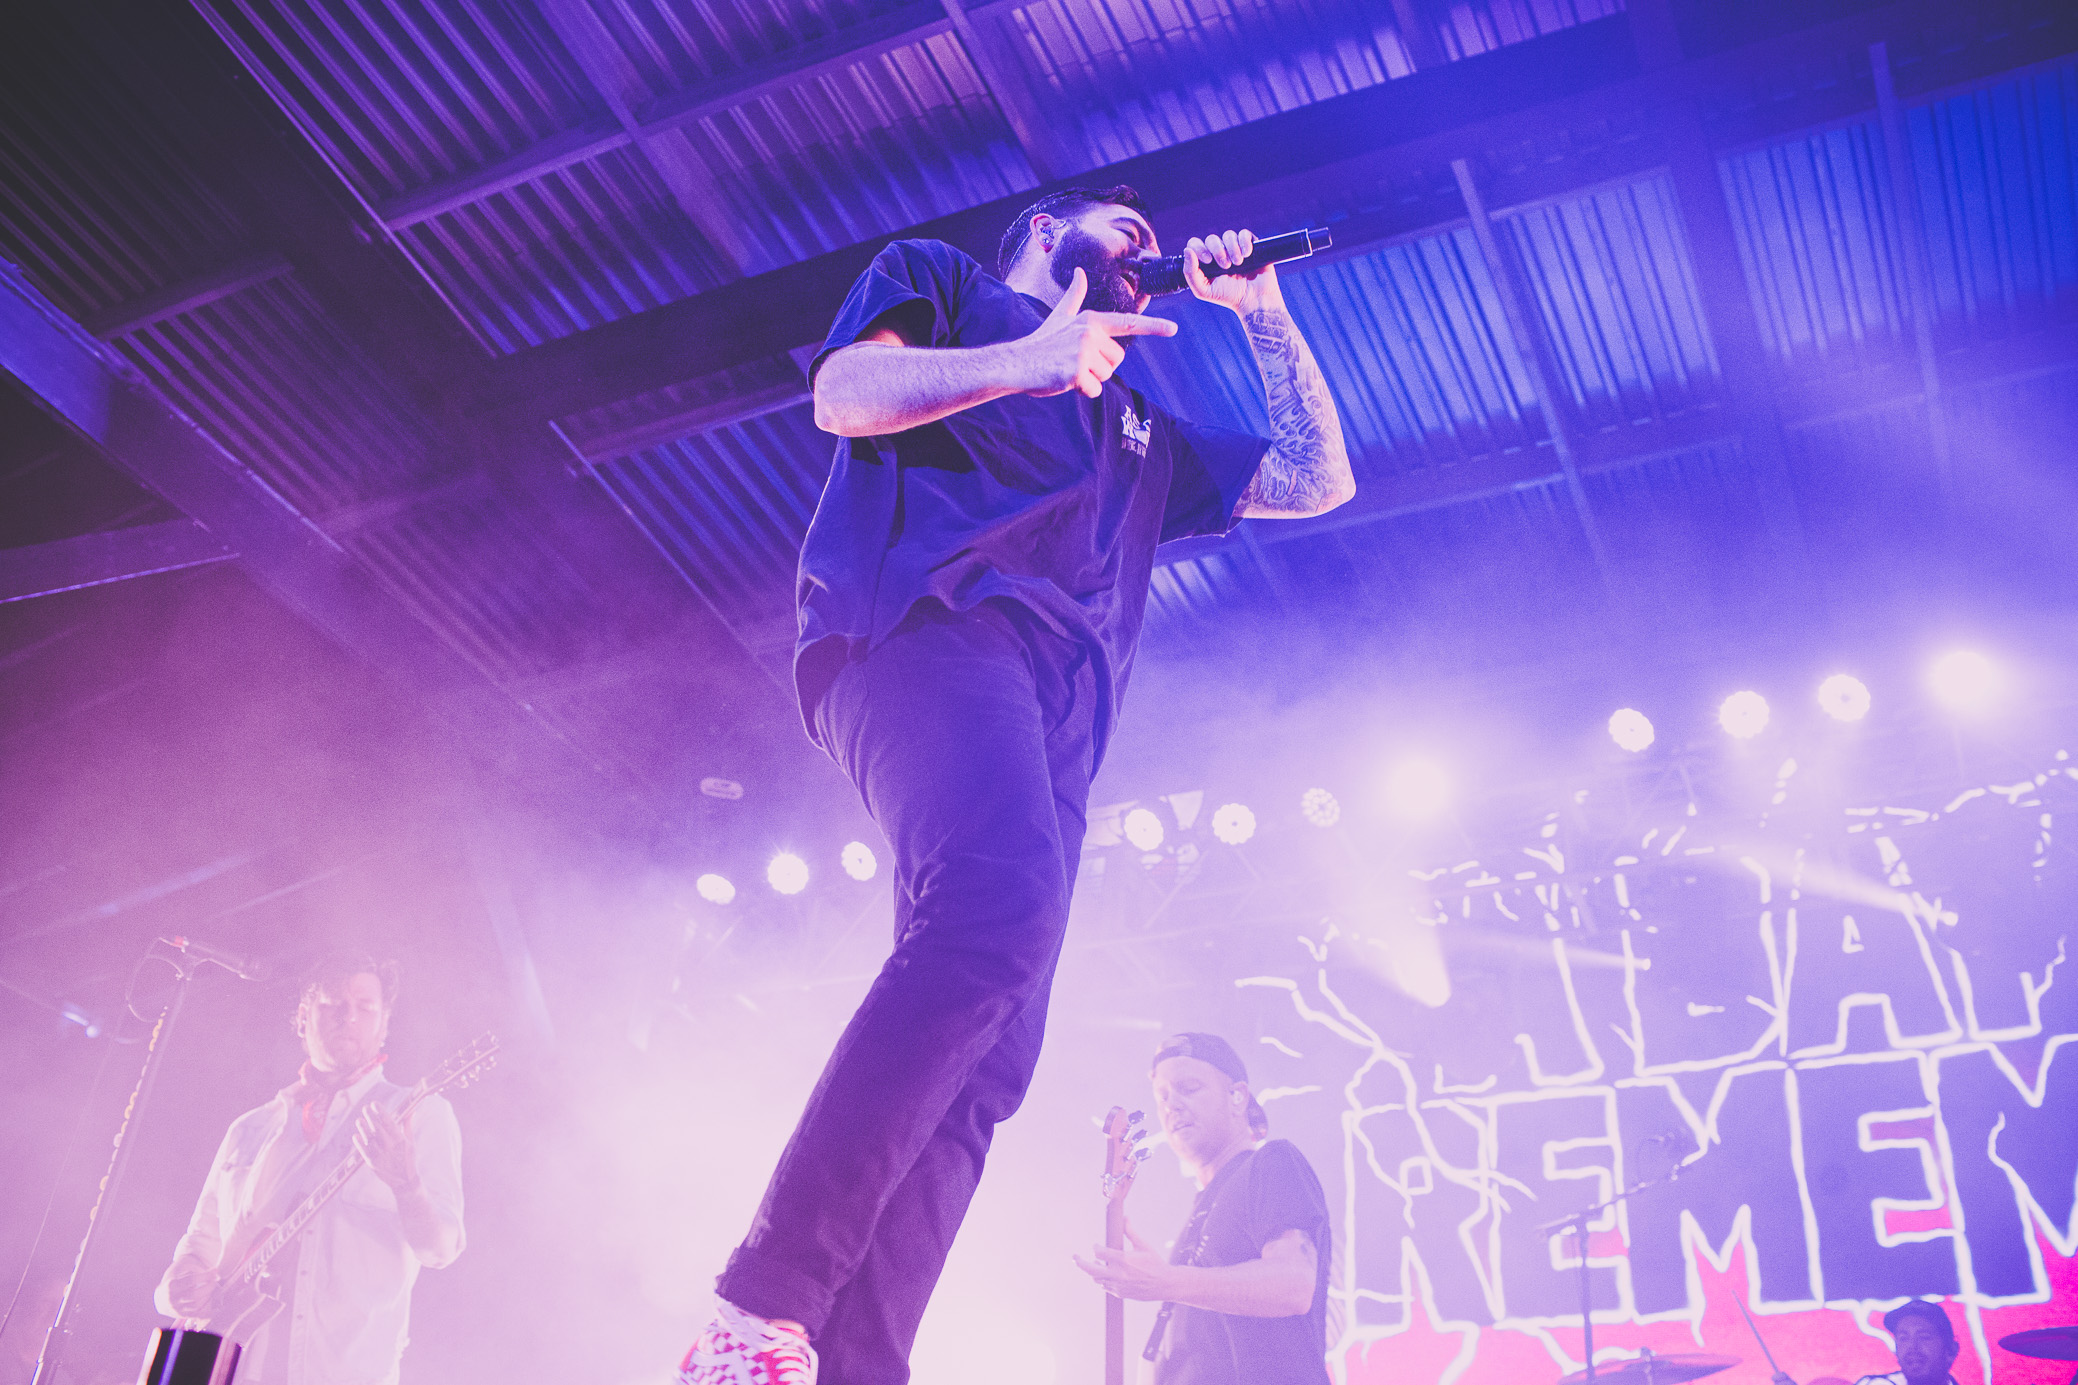 A Day to Remember performs in concert at Avondale Brewing in Birmingham, Alabama on June 15th, 2019. (Photo by David A. Smith / DSmithScenes)